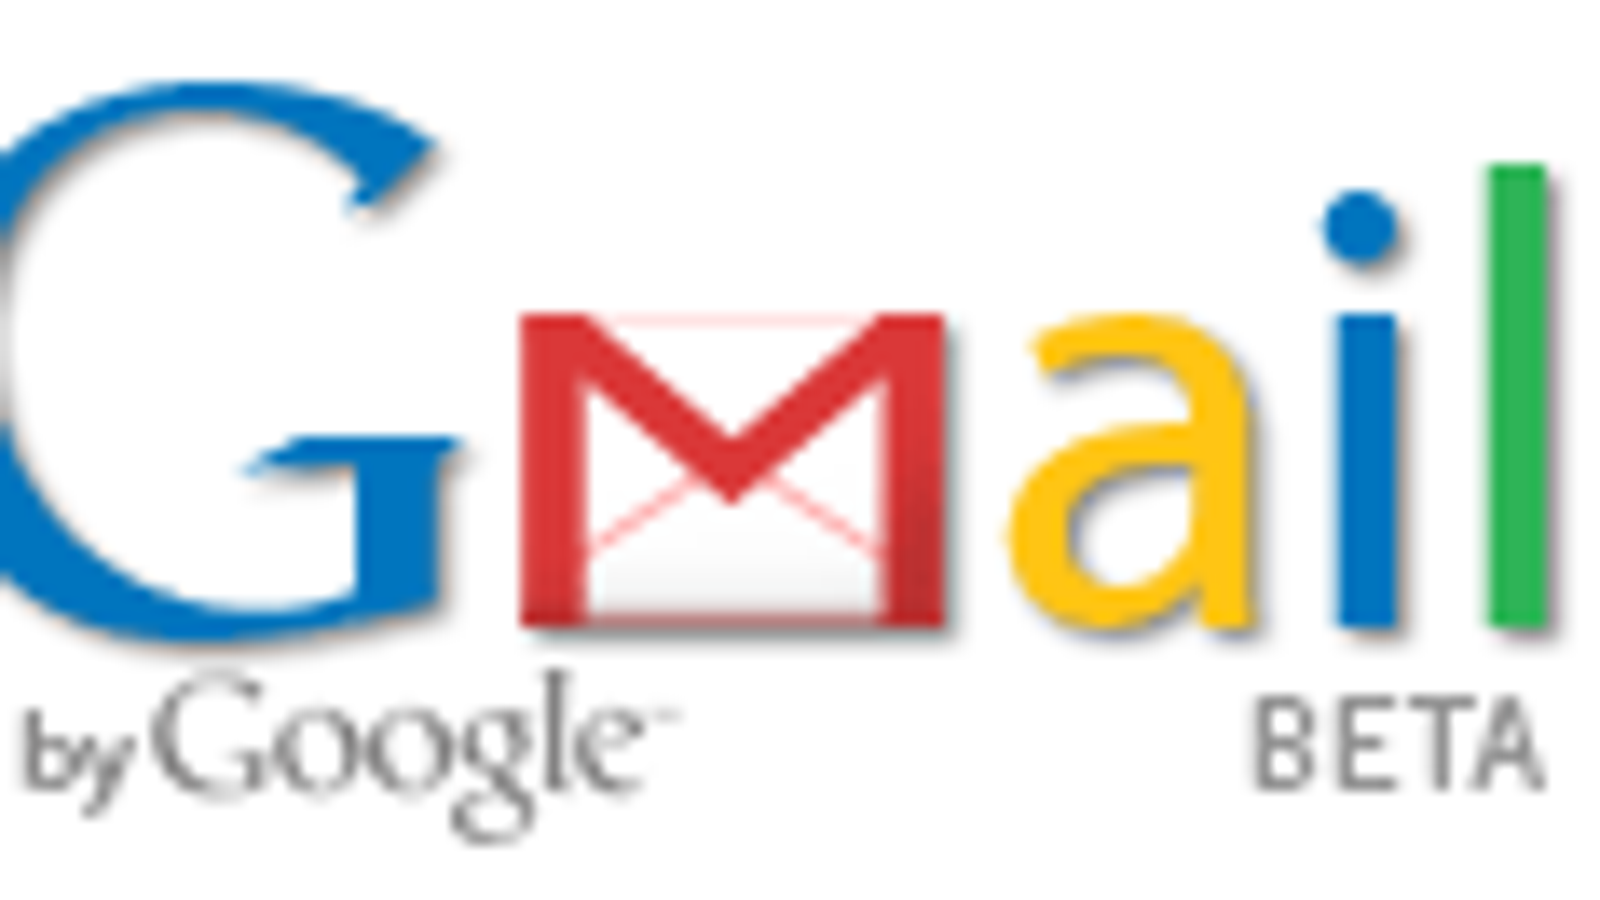 Generate unlimited email addresses with Gmail